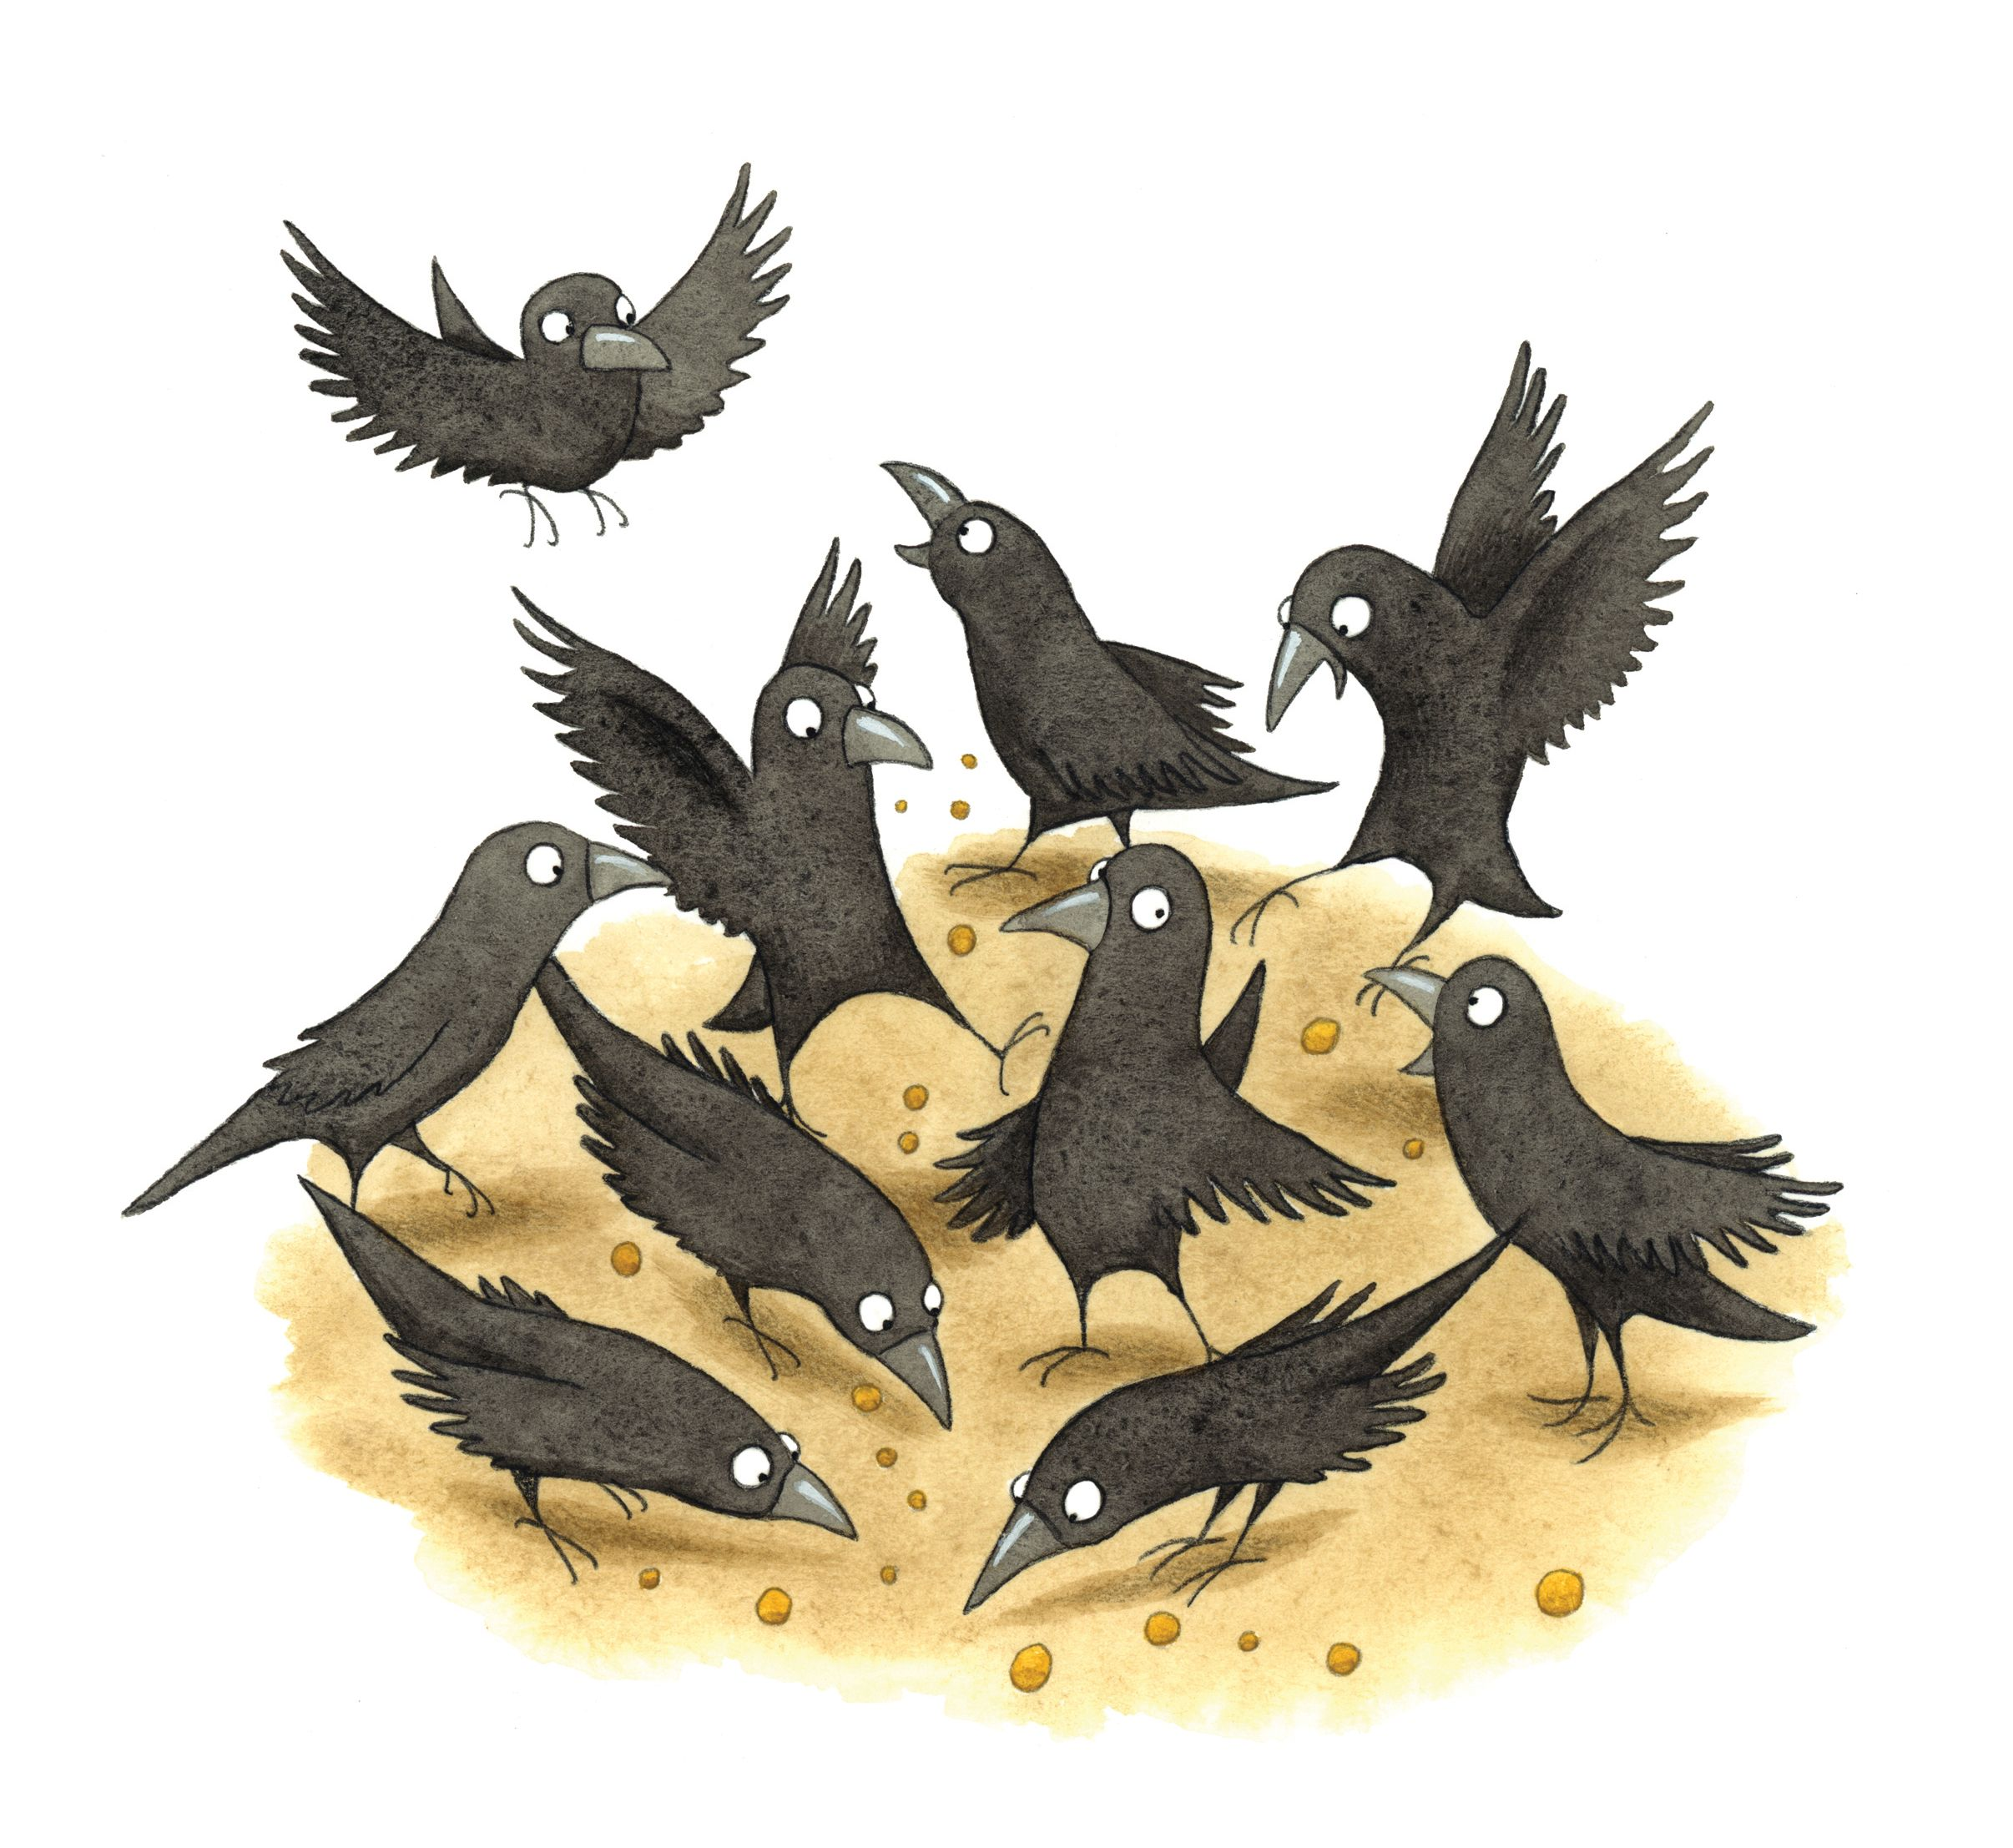 Crow Illustration By Emma Allen. From The Children's